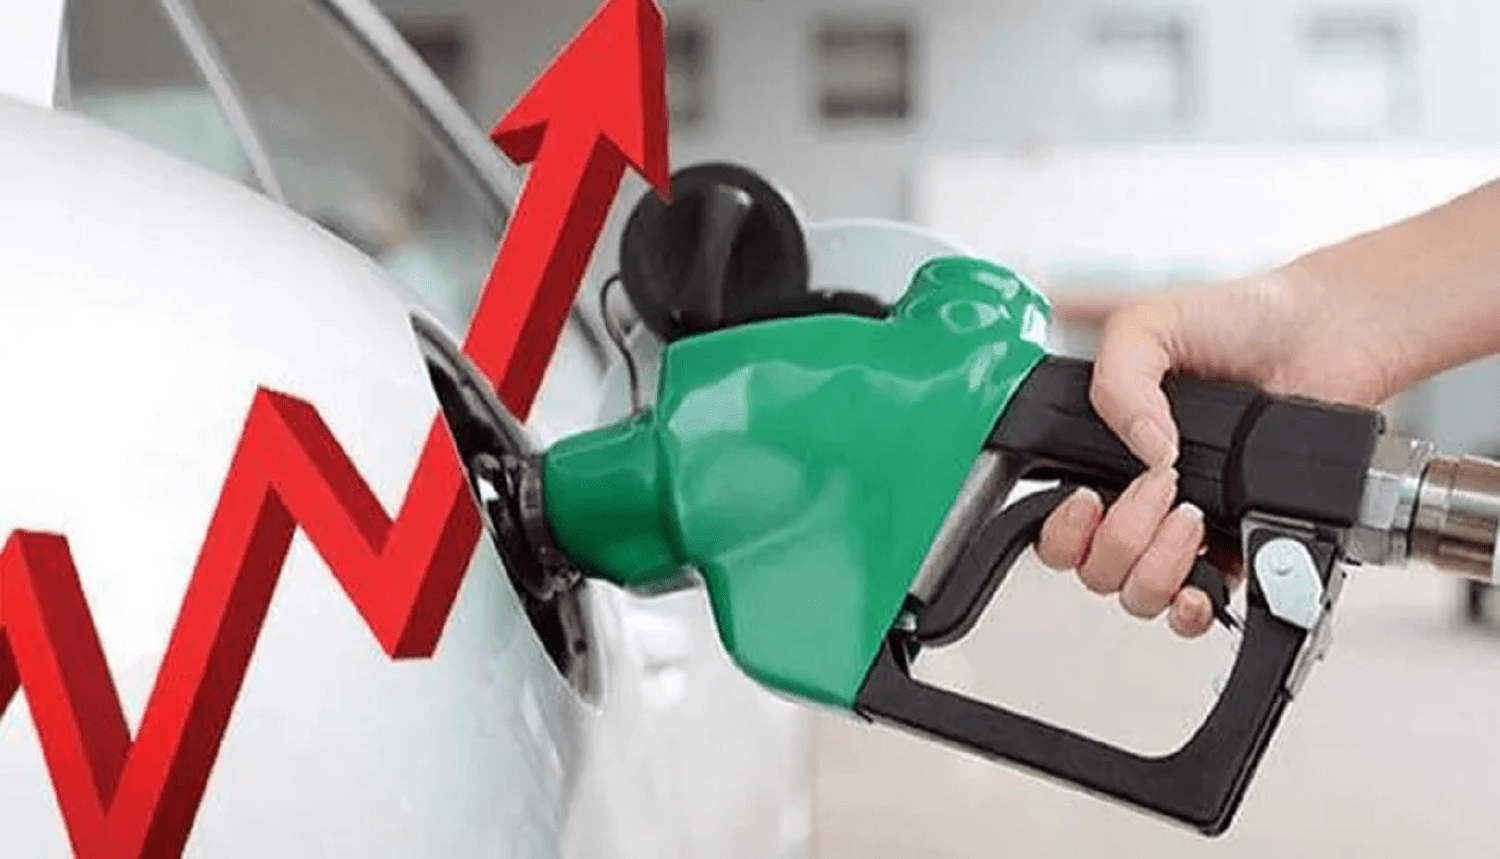 Average price of petrol hits N165.91 in July - National Daily Newspaper